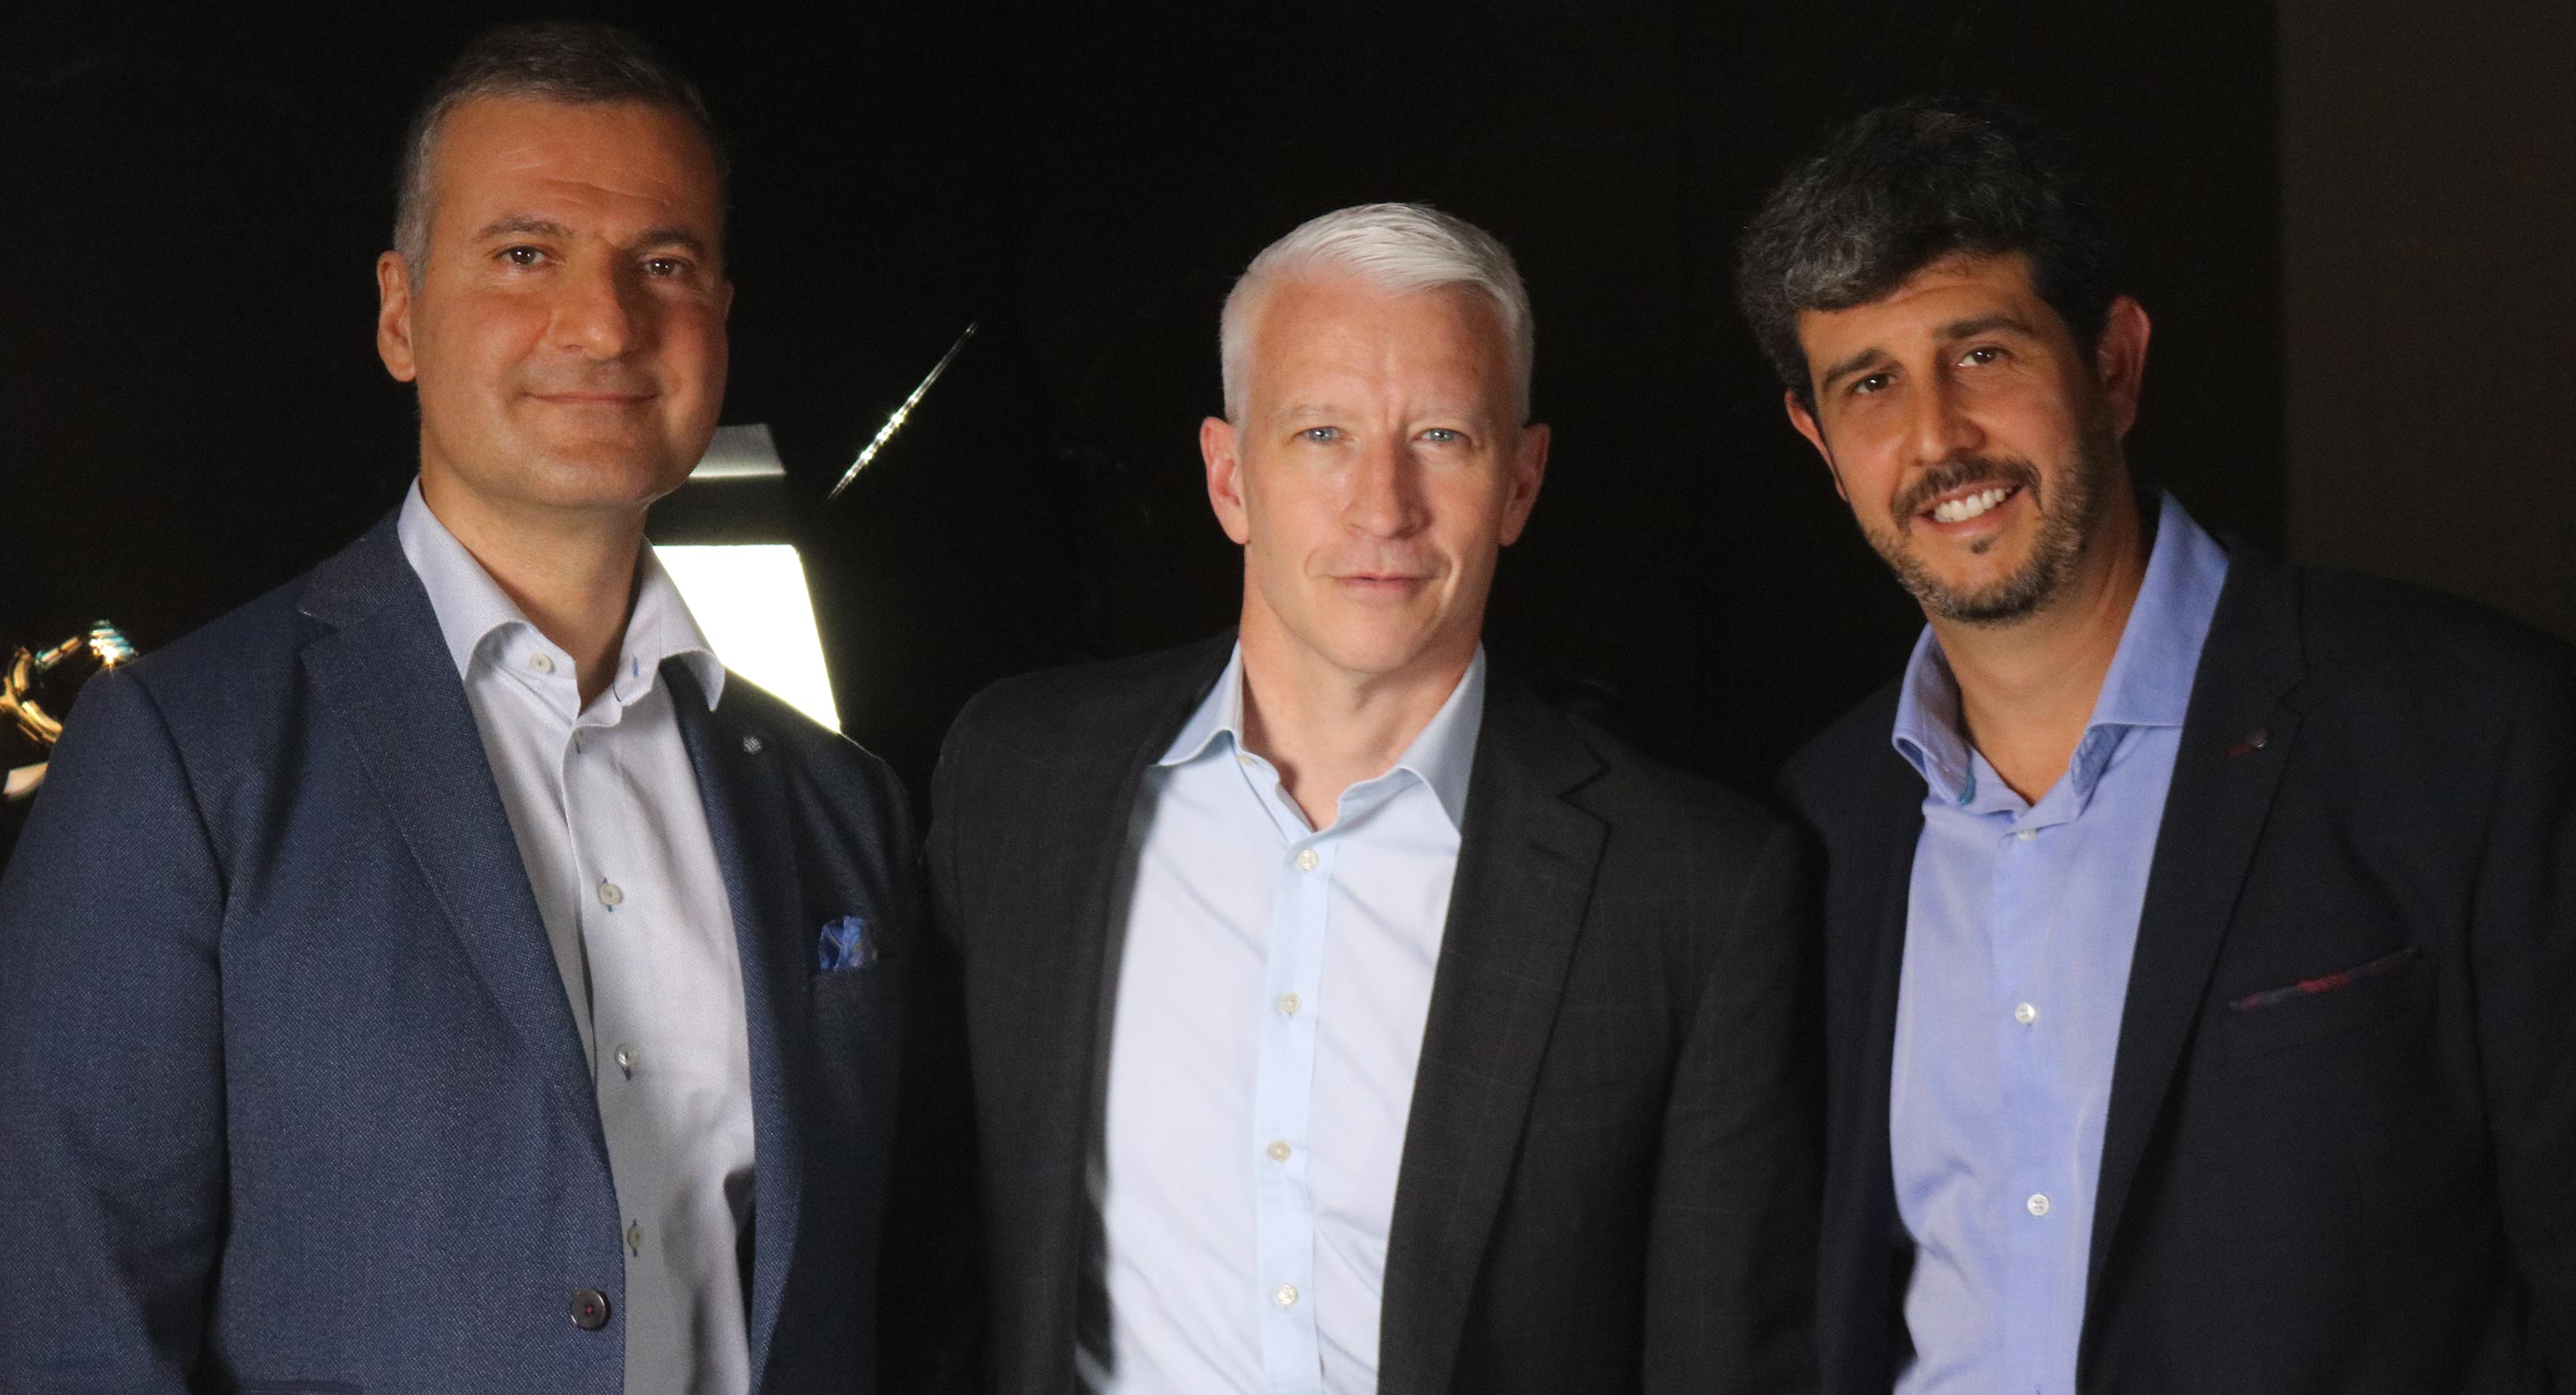 Dr. Jeff Daskalakis, Anderson Cooper and Dr. Daniel Blumberger